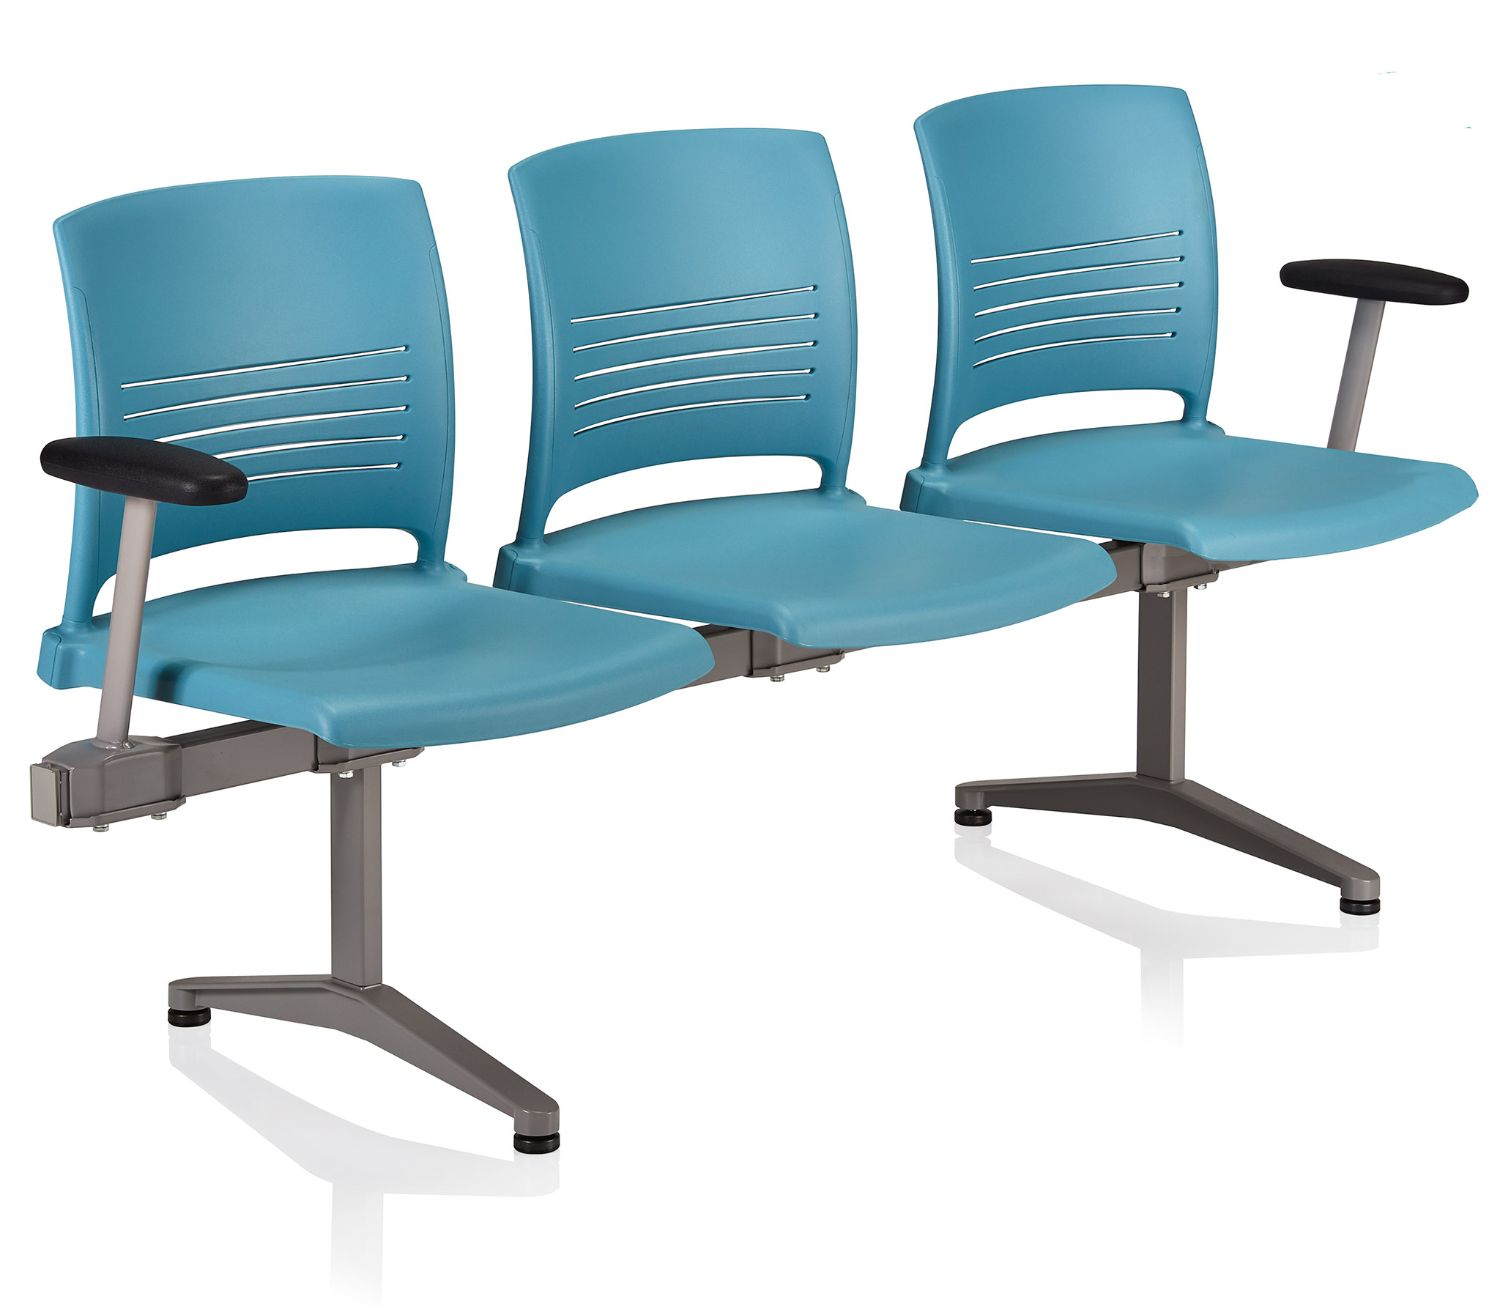 ki strive tandem seating - 3 person with outside arms